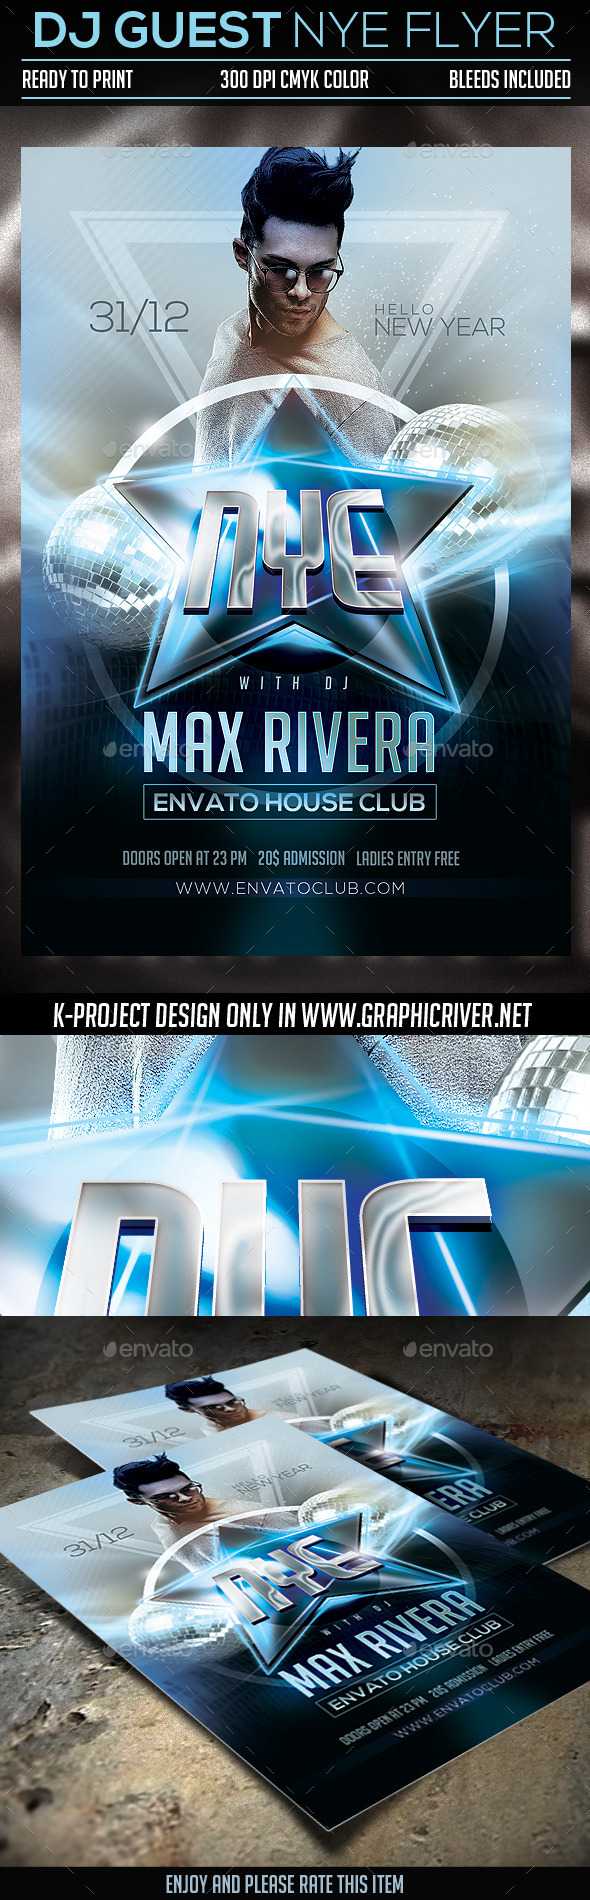 GraphicRiver DJ Guest NYE Flyer 9861497